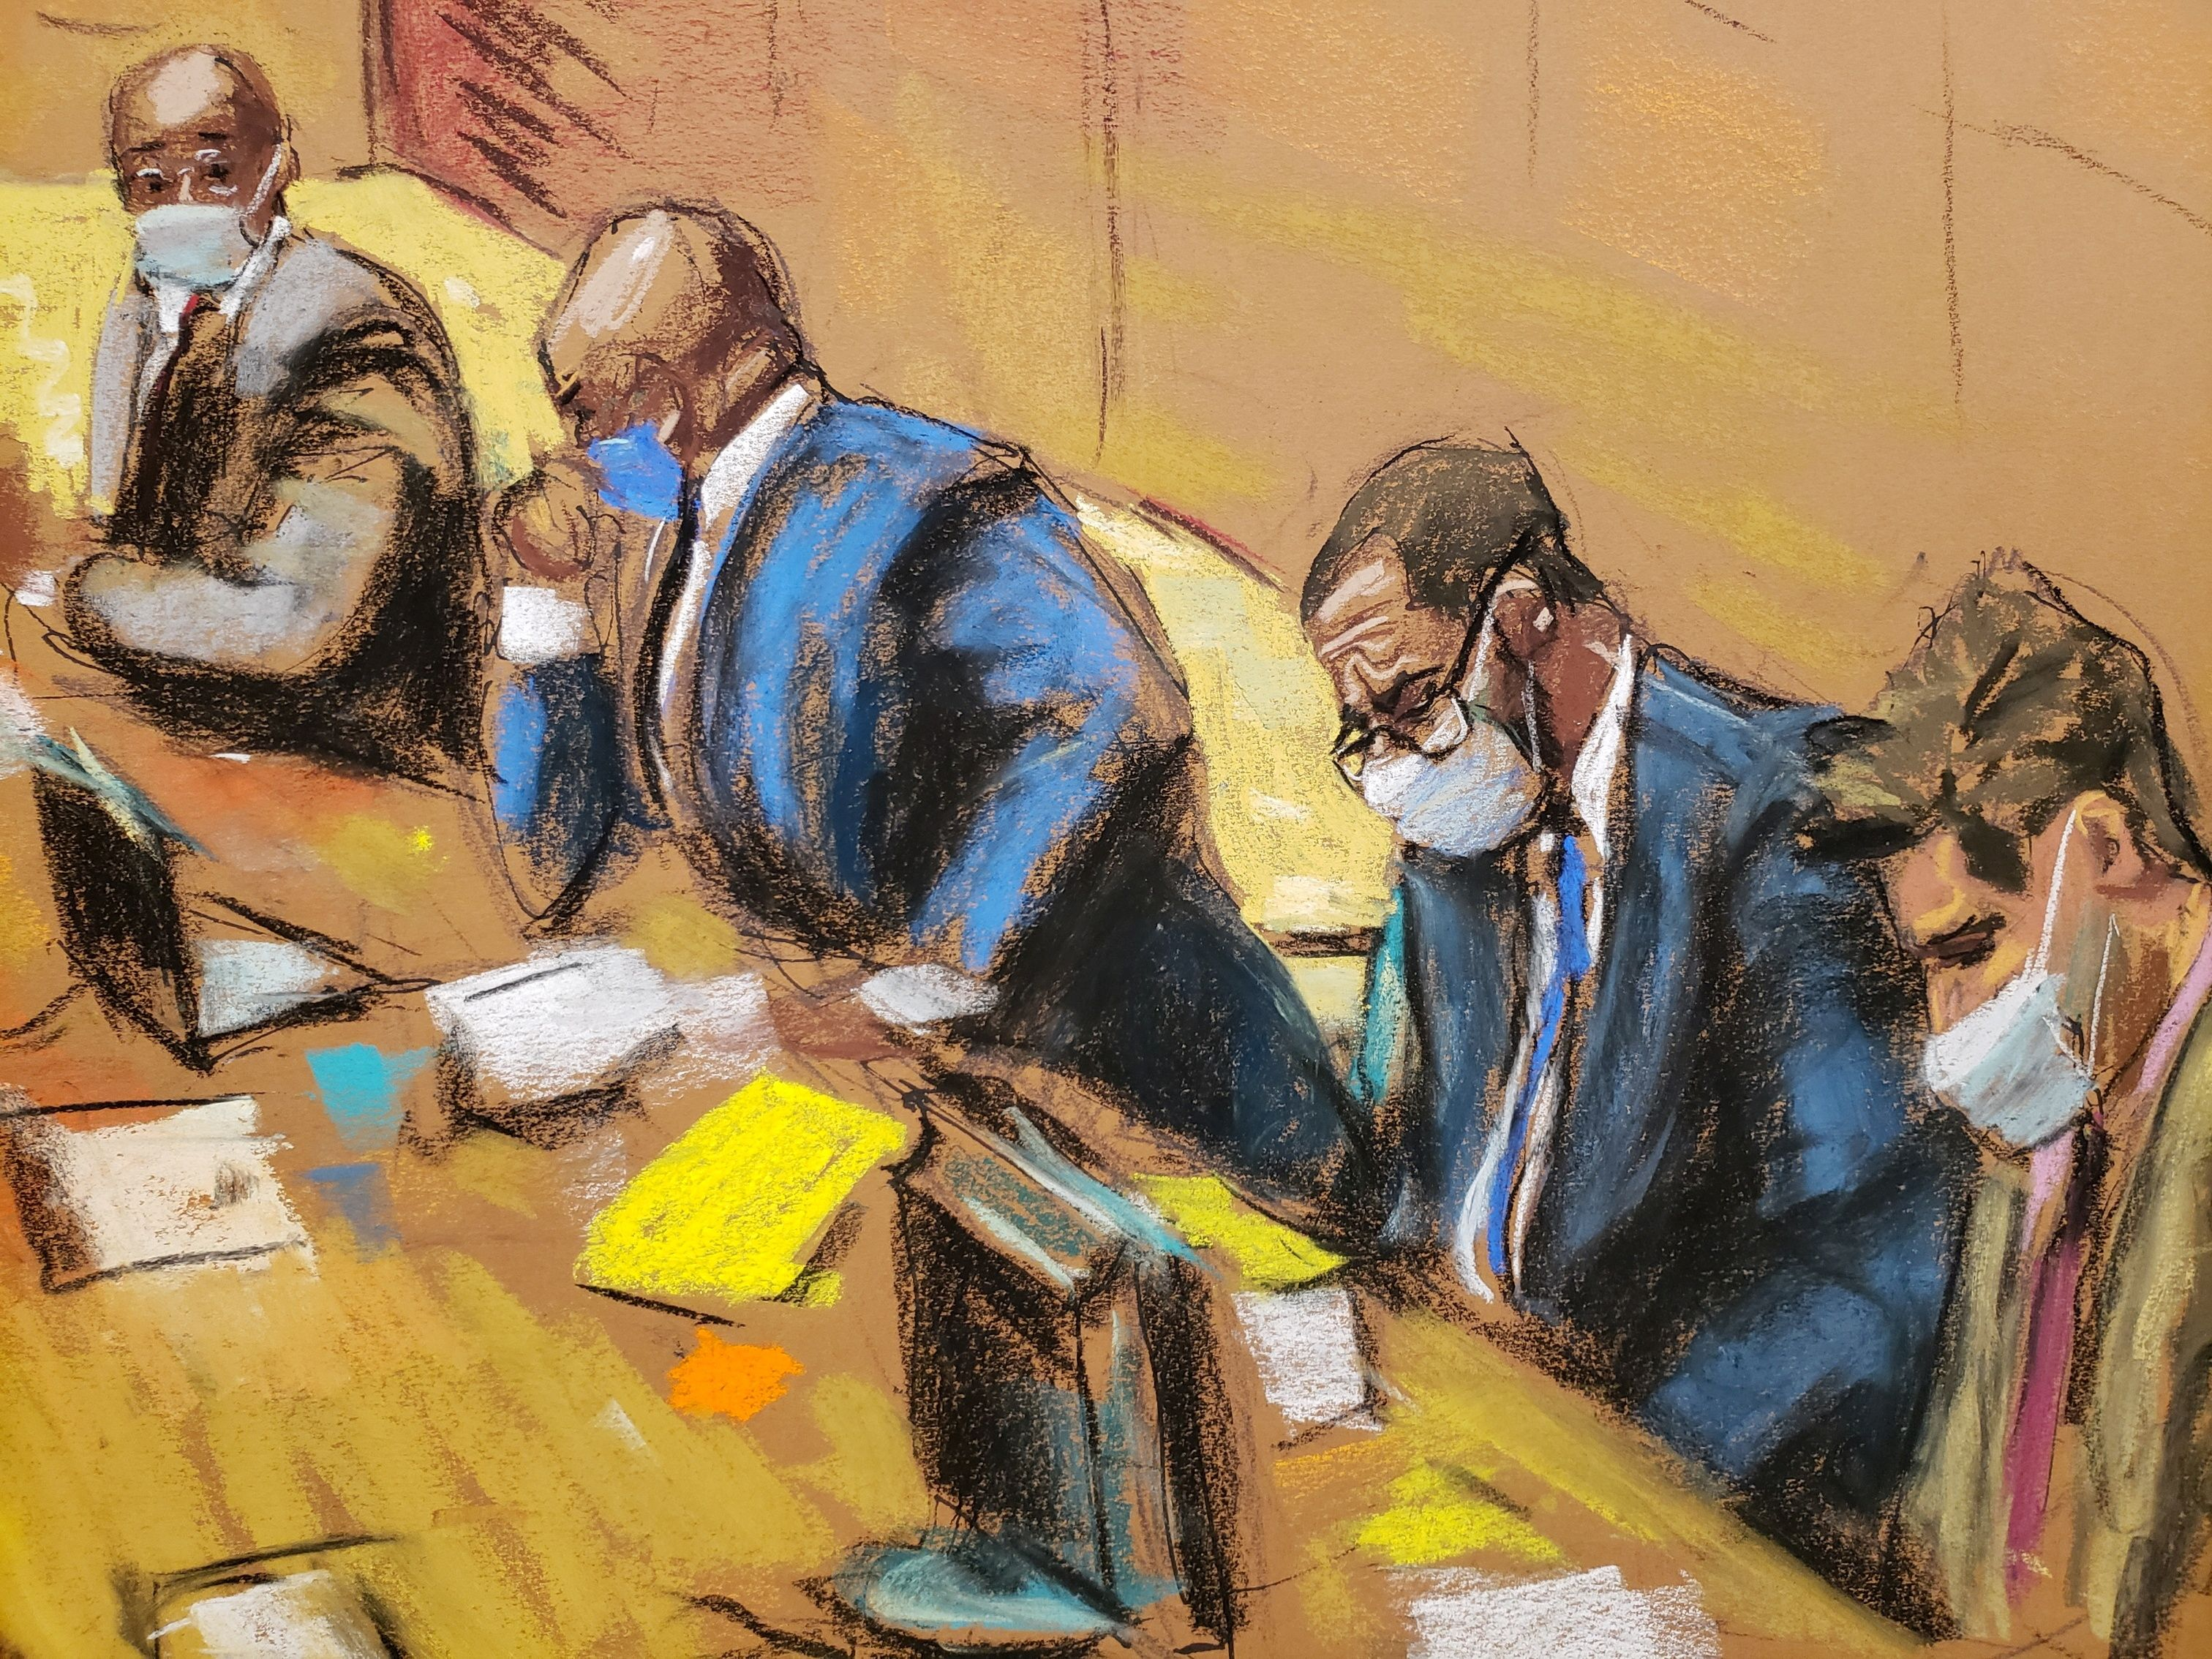 R. Kelly sits with his lawyers Deveraux Cannick, Calvin Scholar and Thomas Farinella as the jury deliberate in Kelly's sex abuse trial at Brooklyn's Federal District Court in a courtroom sketch in New York, U.S., September 27, 2021. REUTERS/Jane Rosenberg